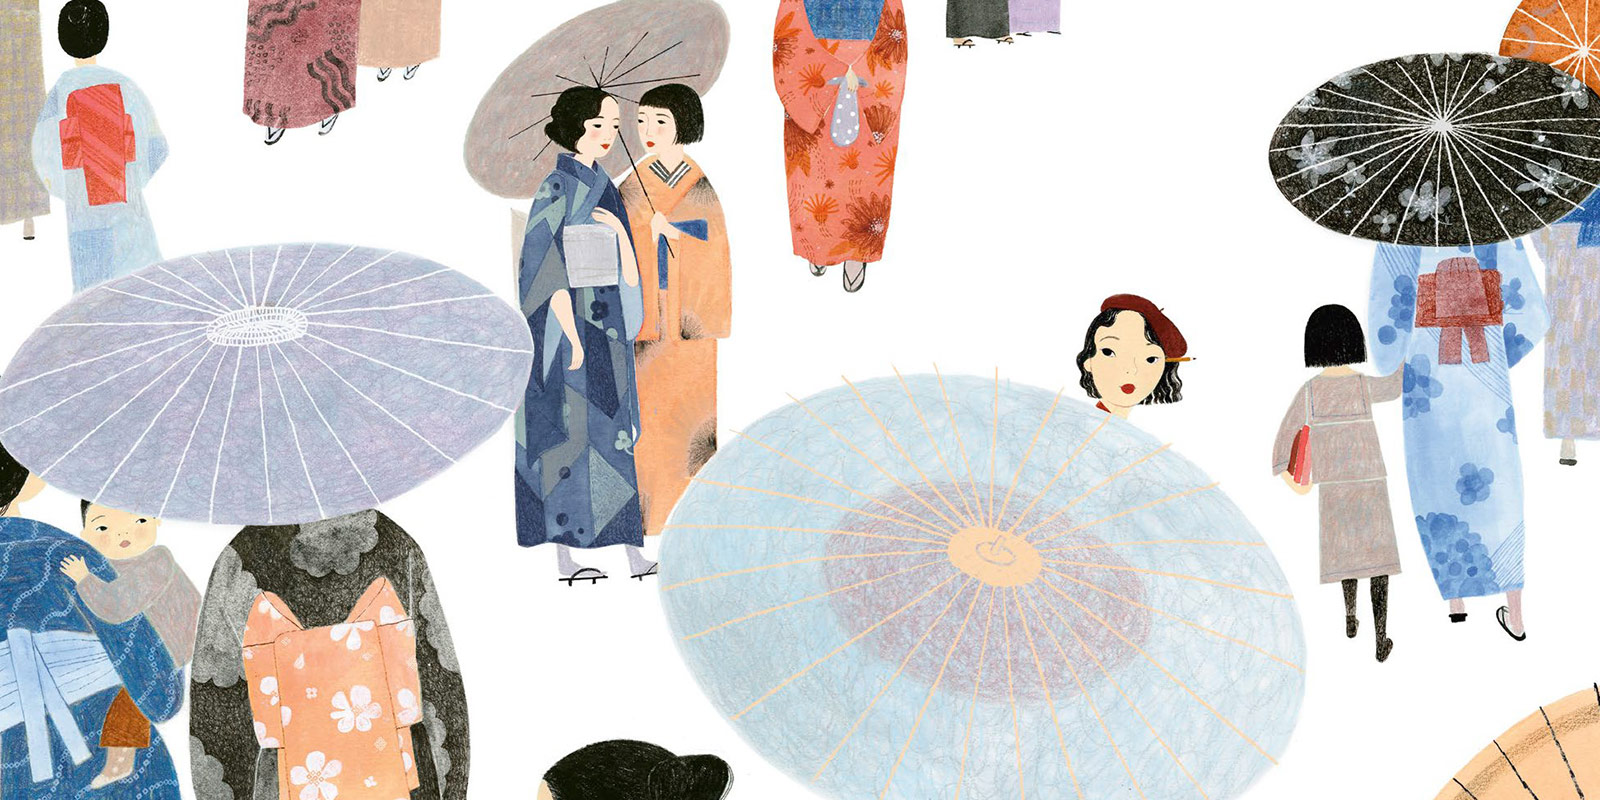 Illustration depicting women in kimonos with umbrellas